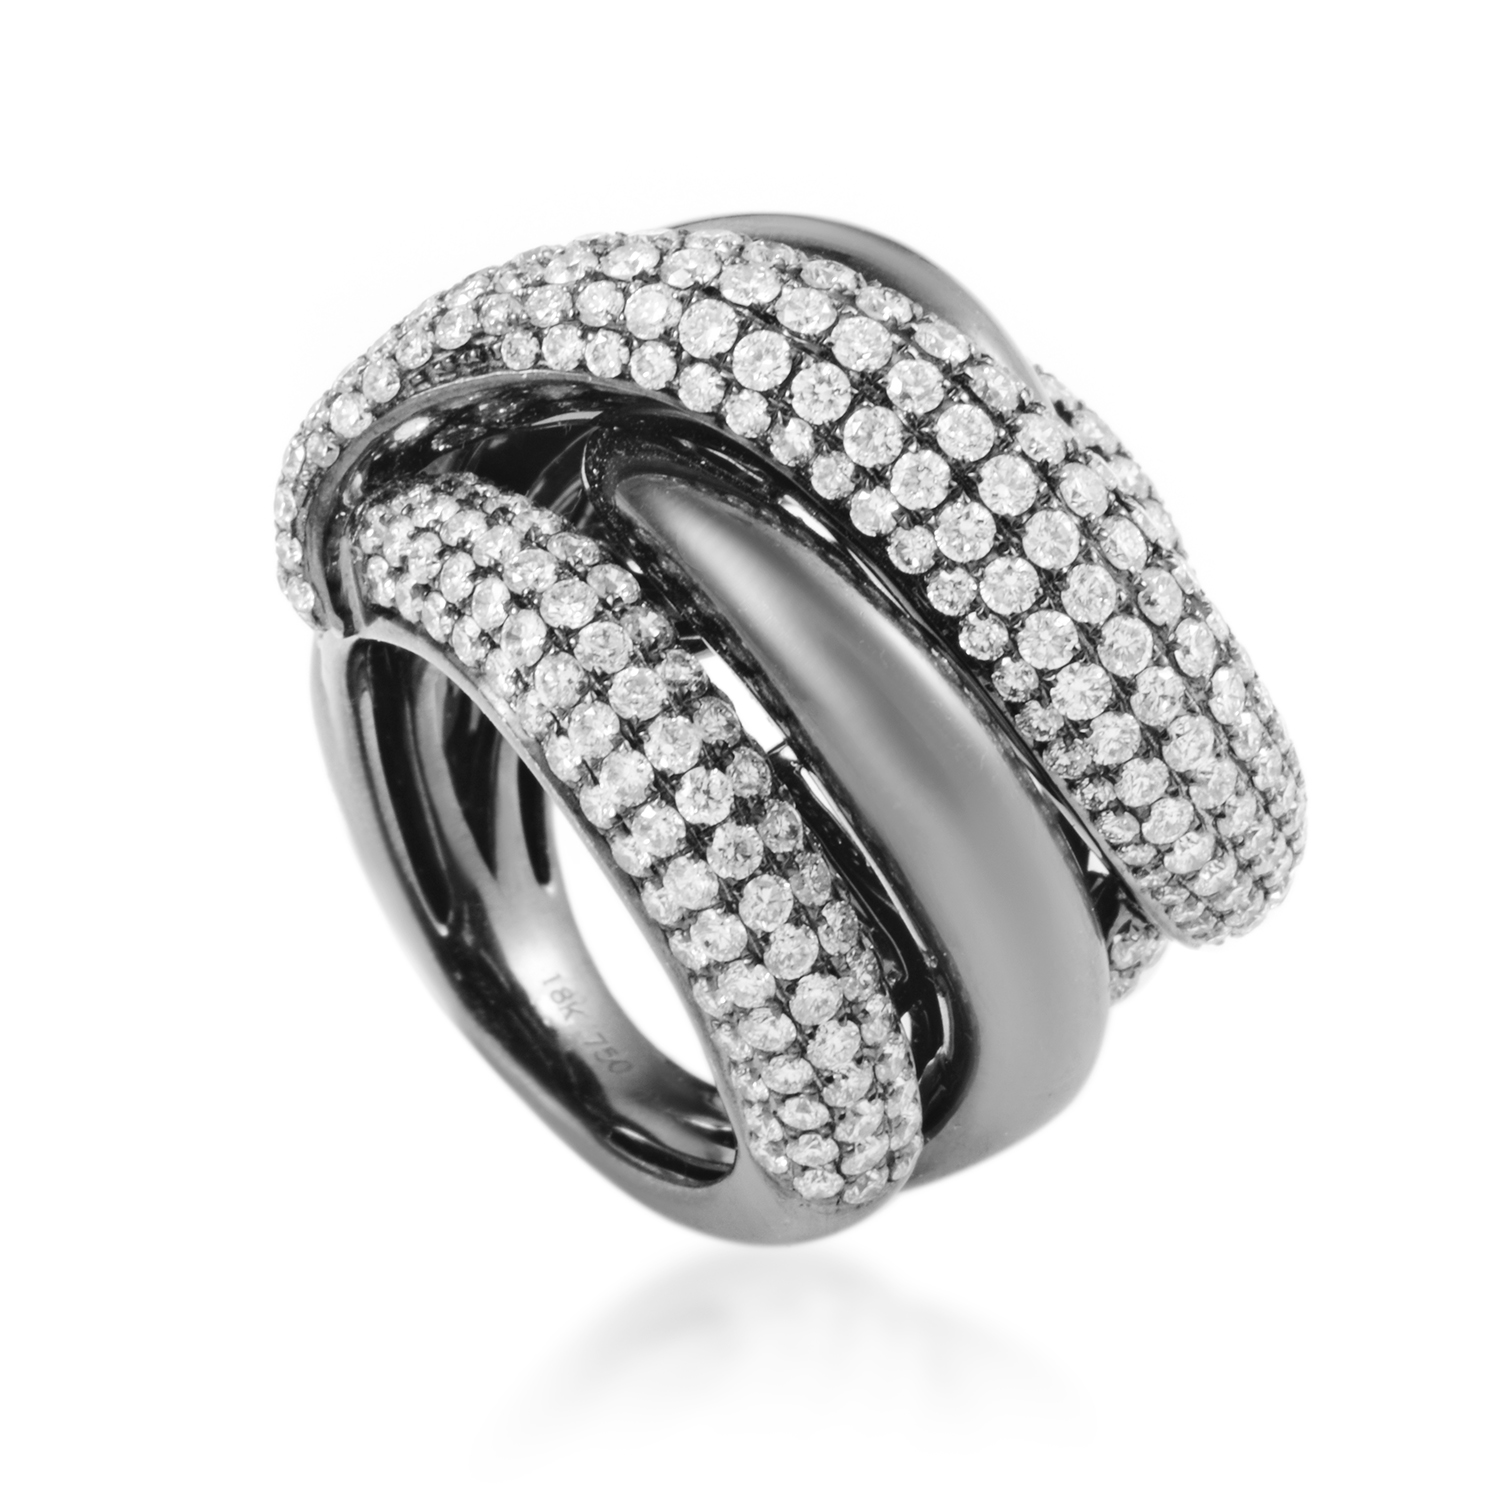 Women's 18K White Gold Twisted Diamond Ring RG5336